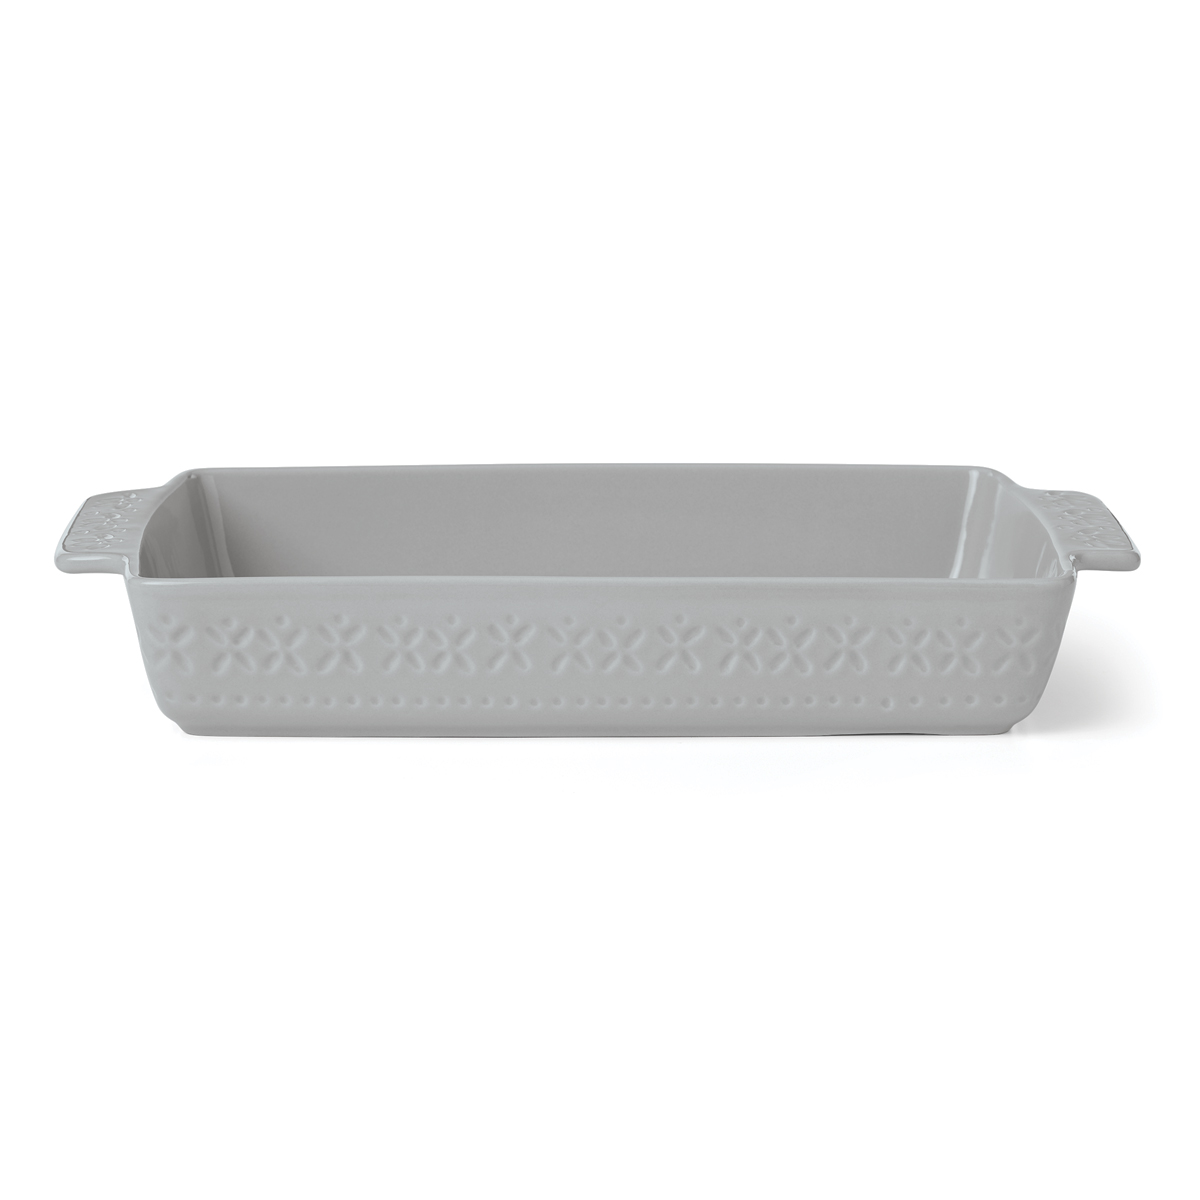 Kate Spade China by Lenox, Stoneware Willow Drive Grey Rectangular Baker